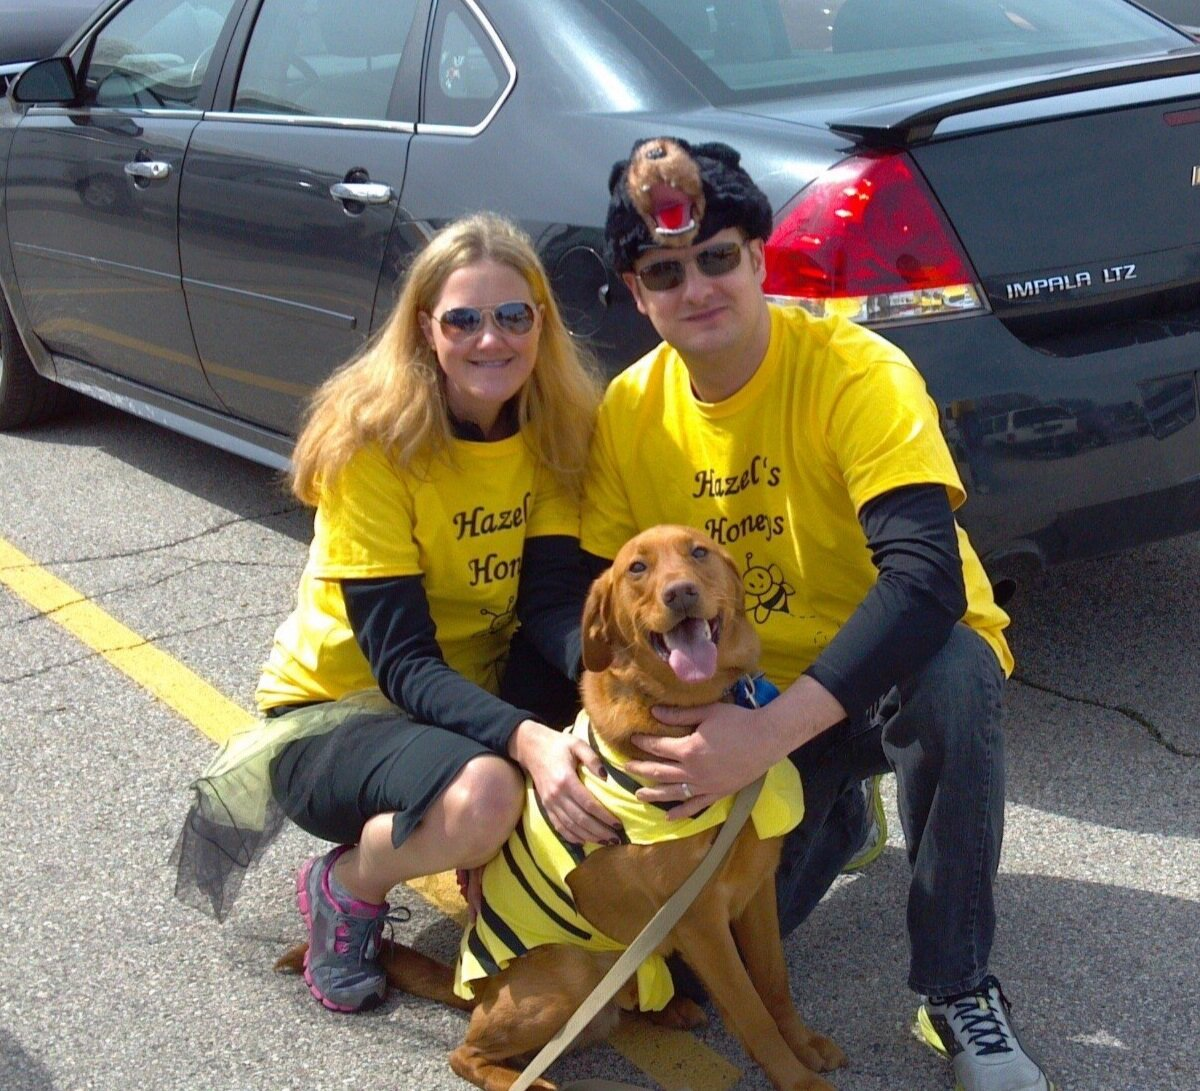 Annual walk for Cystic Fibrosis in support of our friends' daughter, Hazel